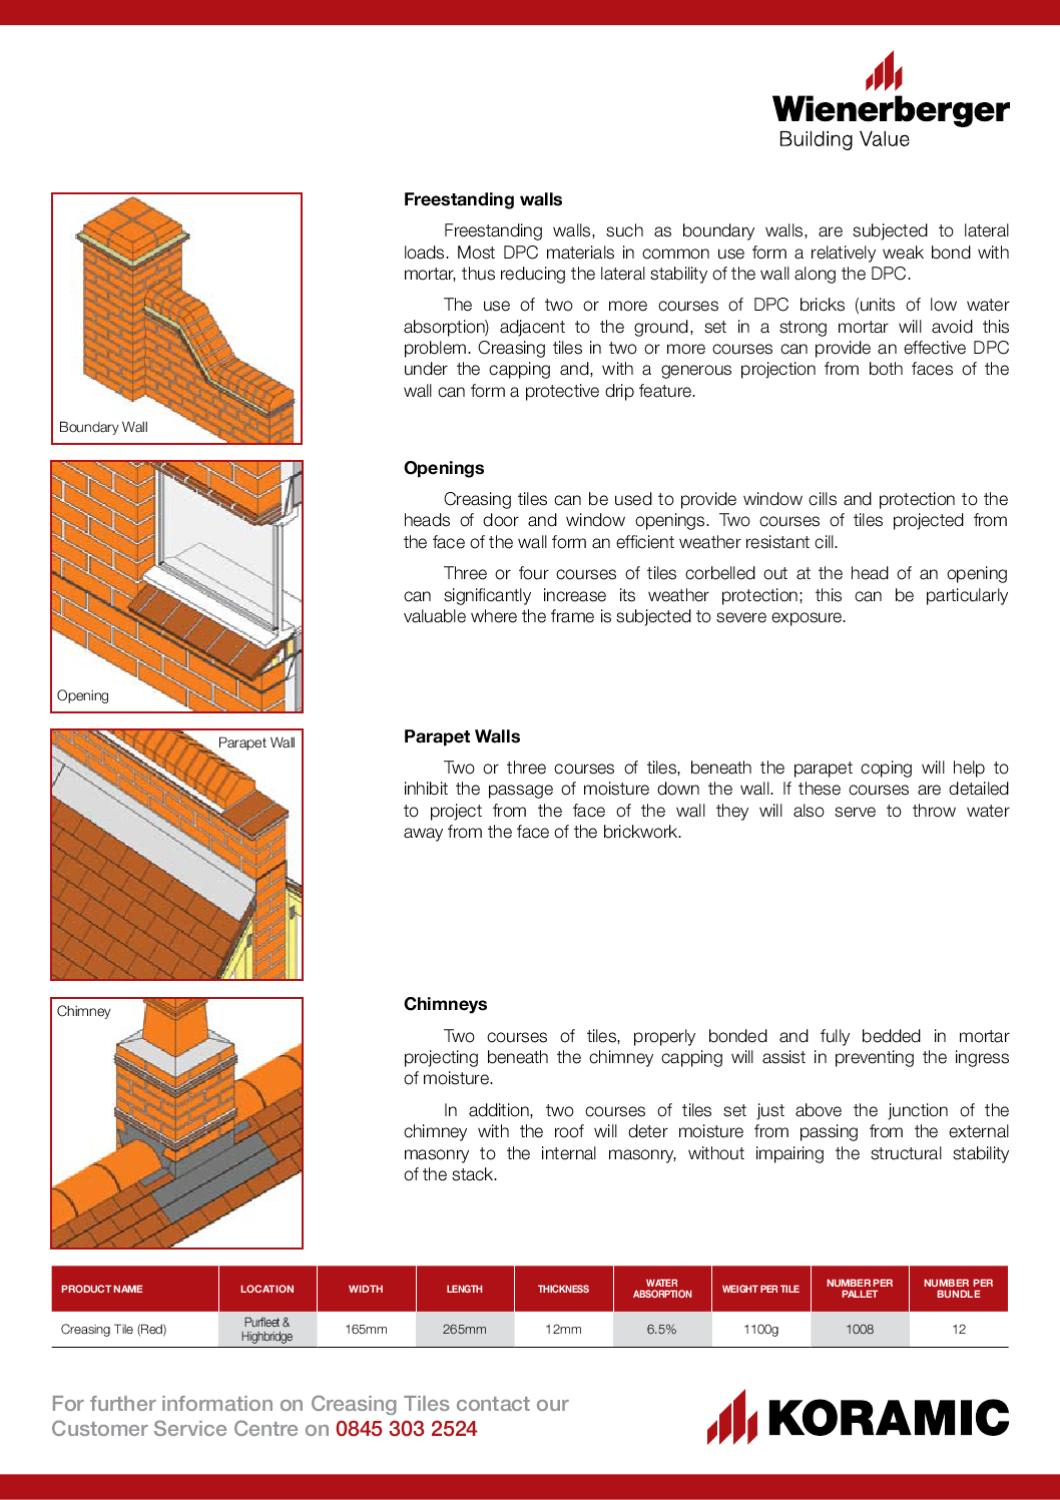 Creasing Tile Flyer By Wienerberger Ag Issuu